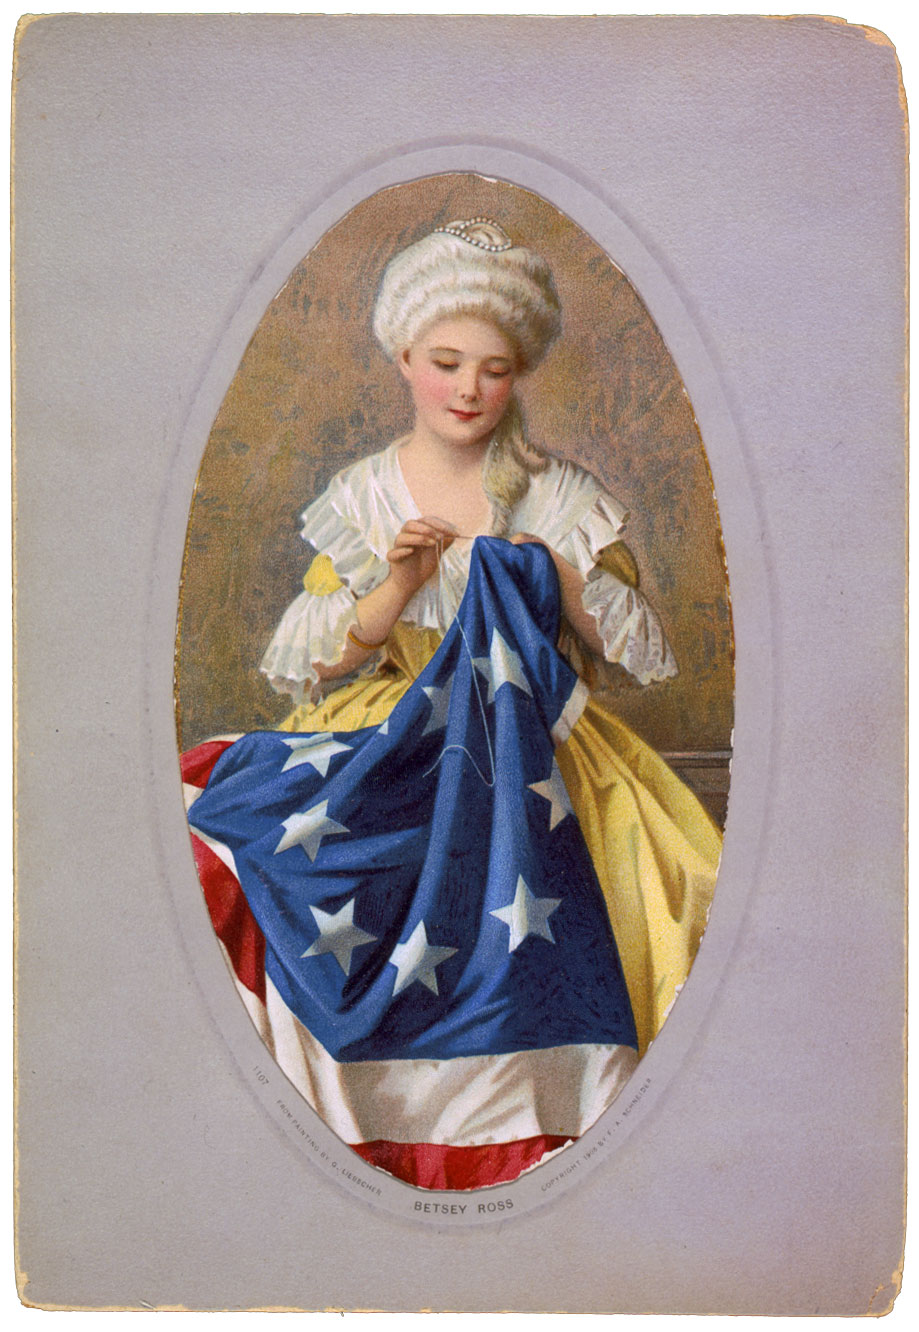 General of the Continental Army, George Washington appeared on Mrs. Betsy Ross's doorstep around the first of June, 1776, with two representatives of Congress, Colonel Ross and Robert Morris. They asked that she make a flag according to a rough drawing they carried with them.